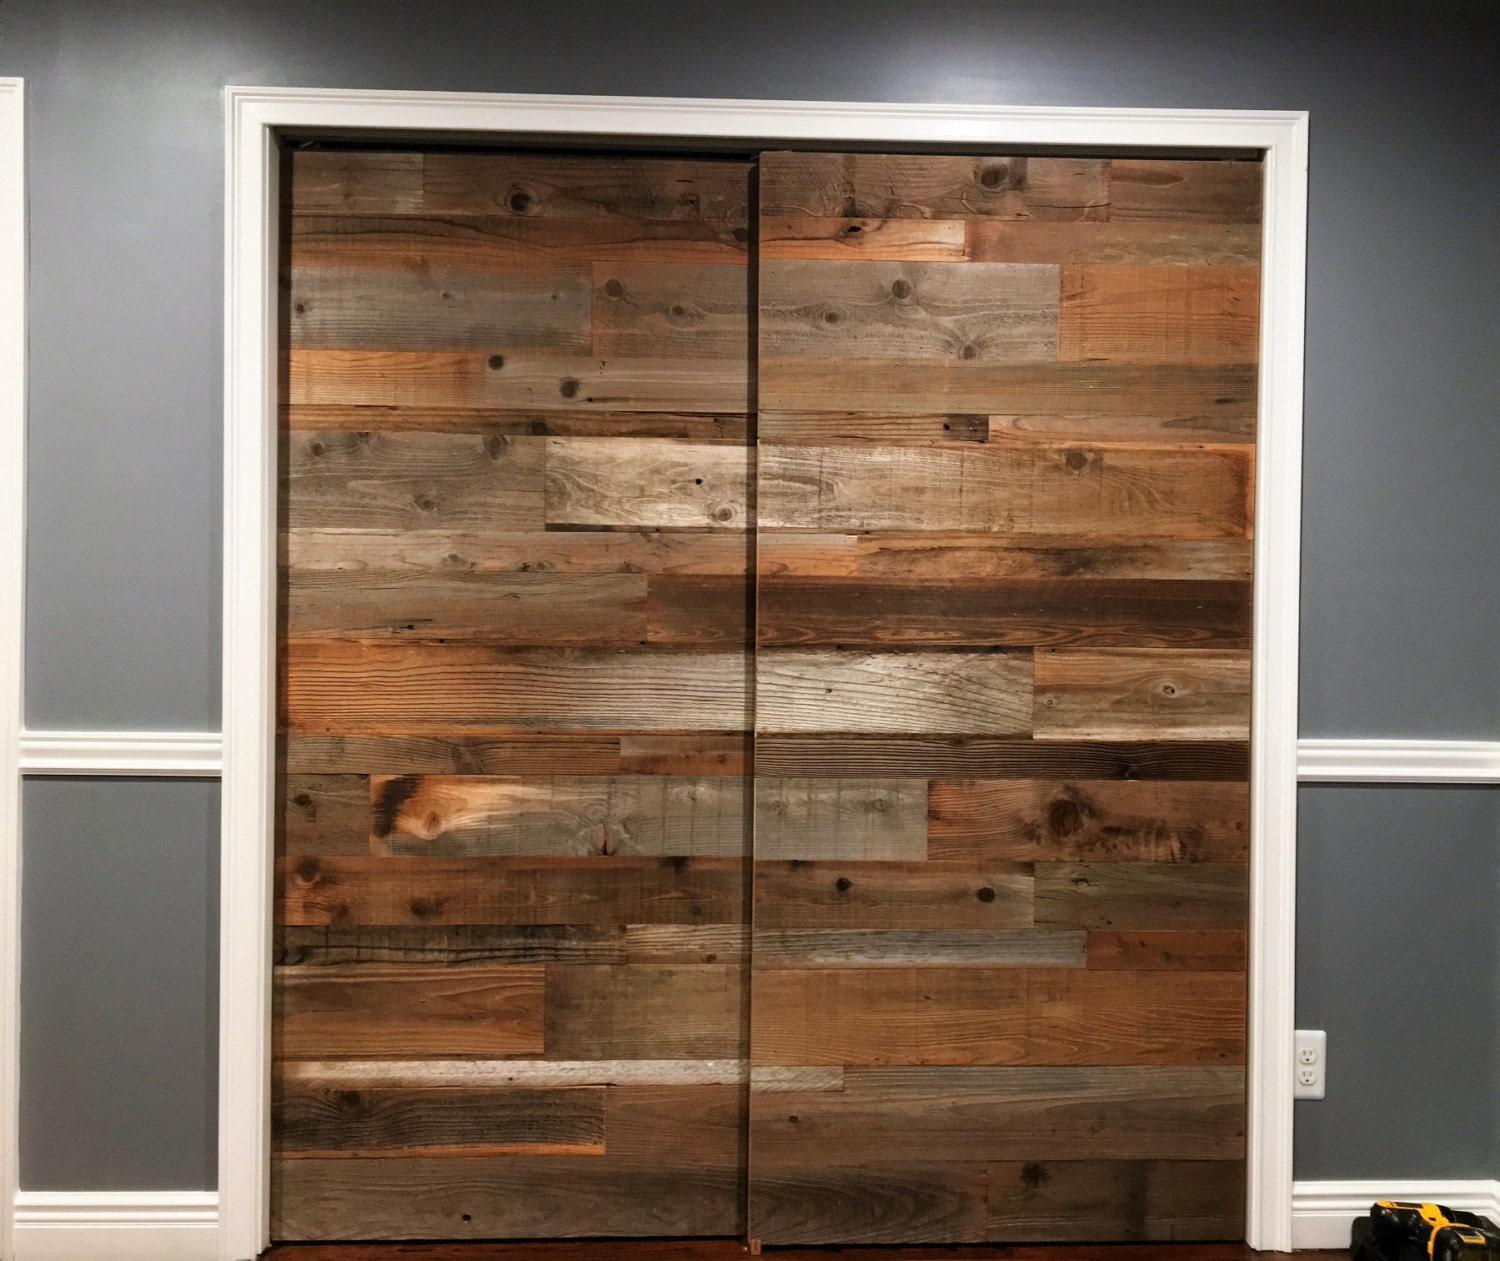 Reclaimed barn door reclaimed wood sliding door reclaimed zoom vtopaller Gallery